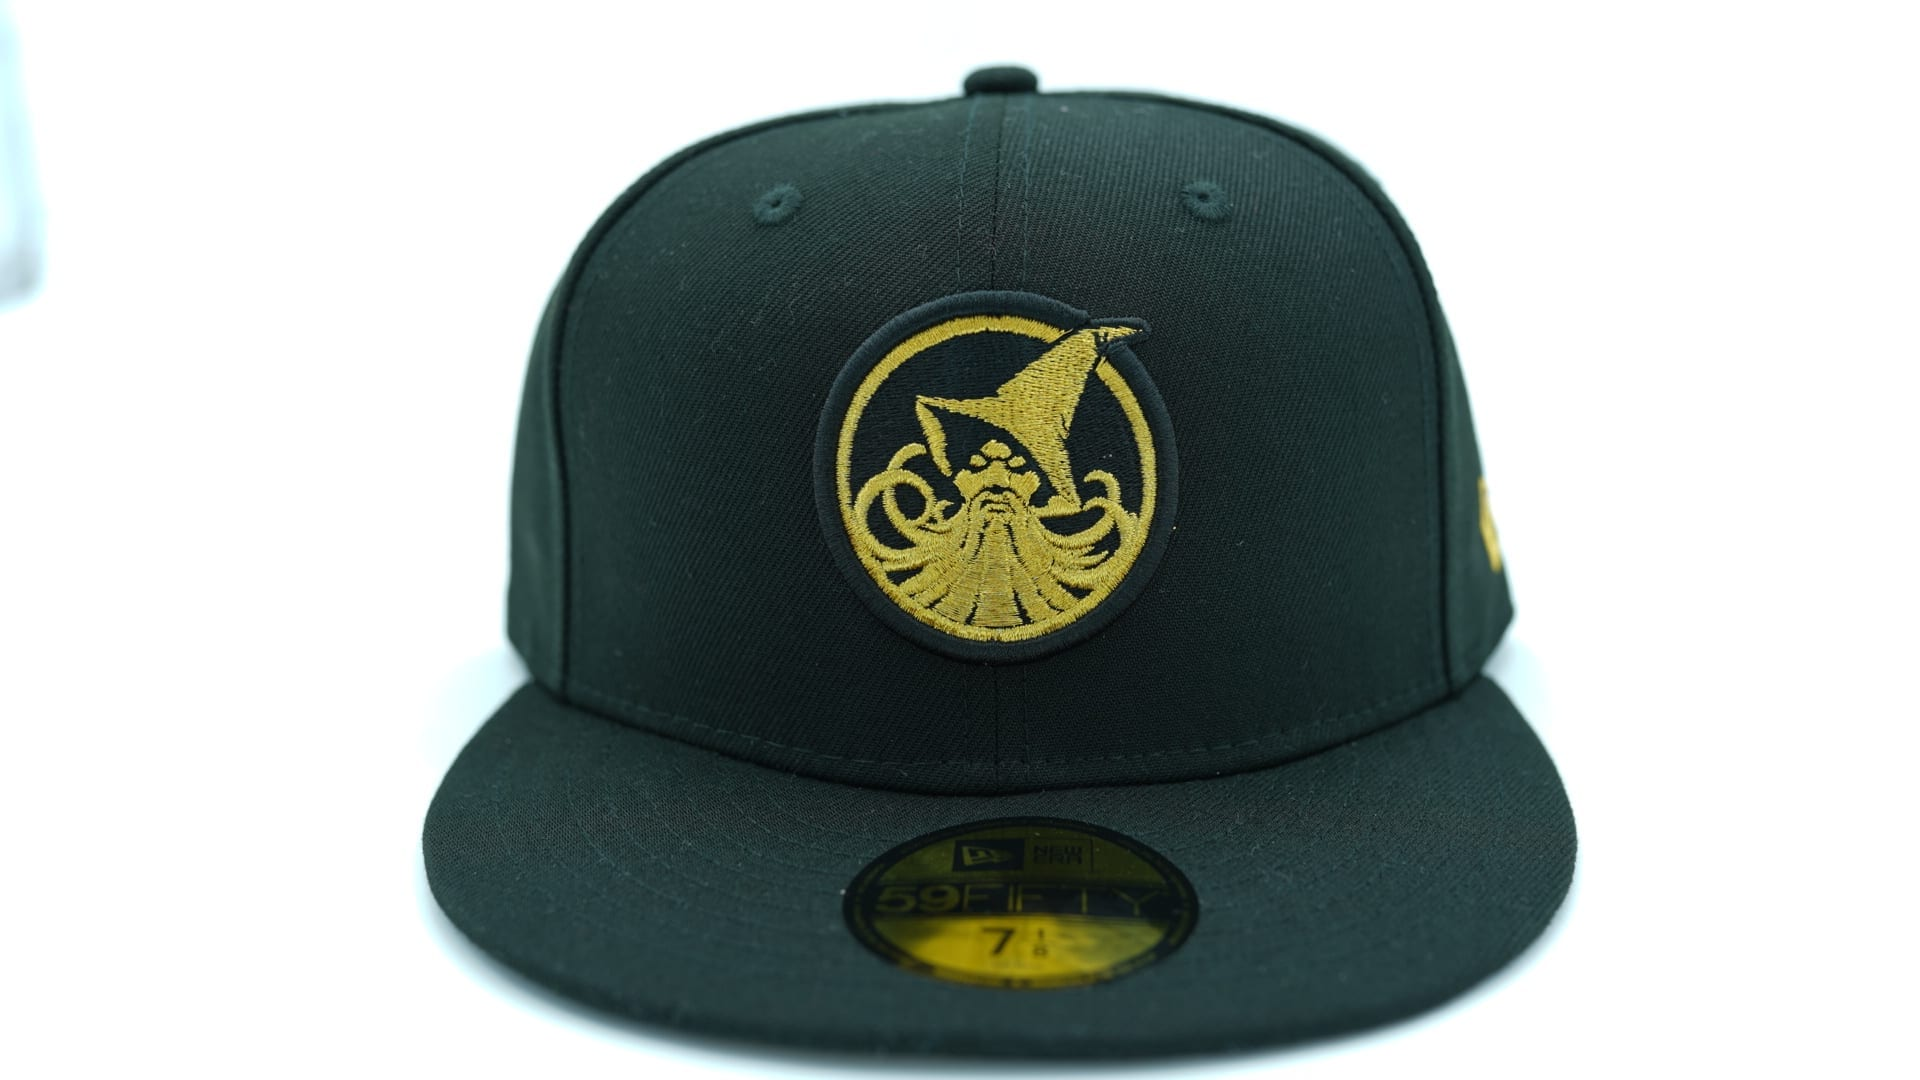 lrg-fitted-cap-1-web